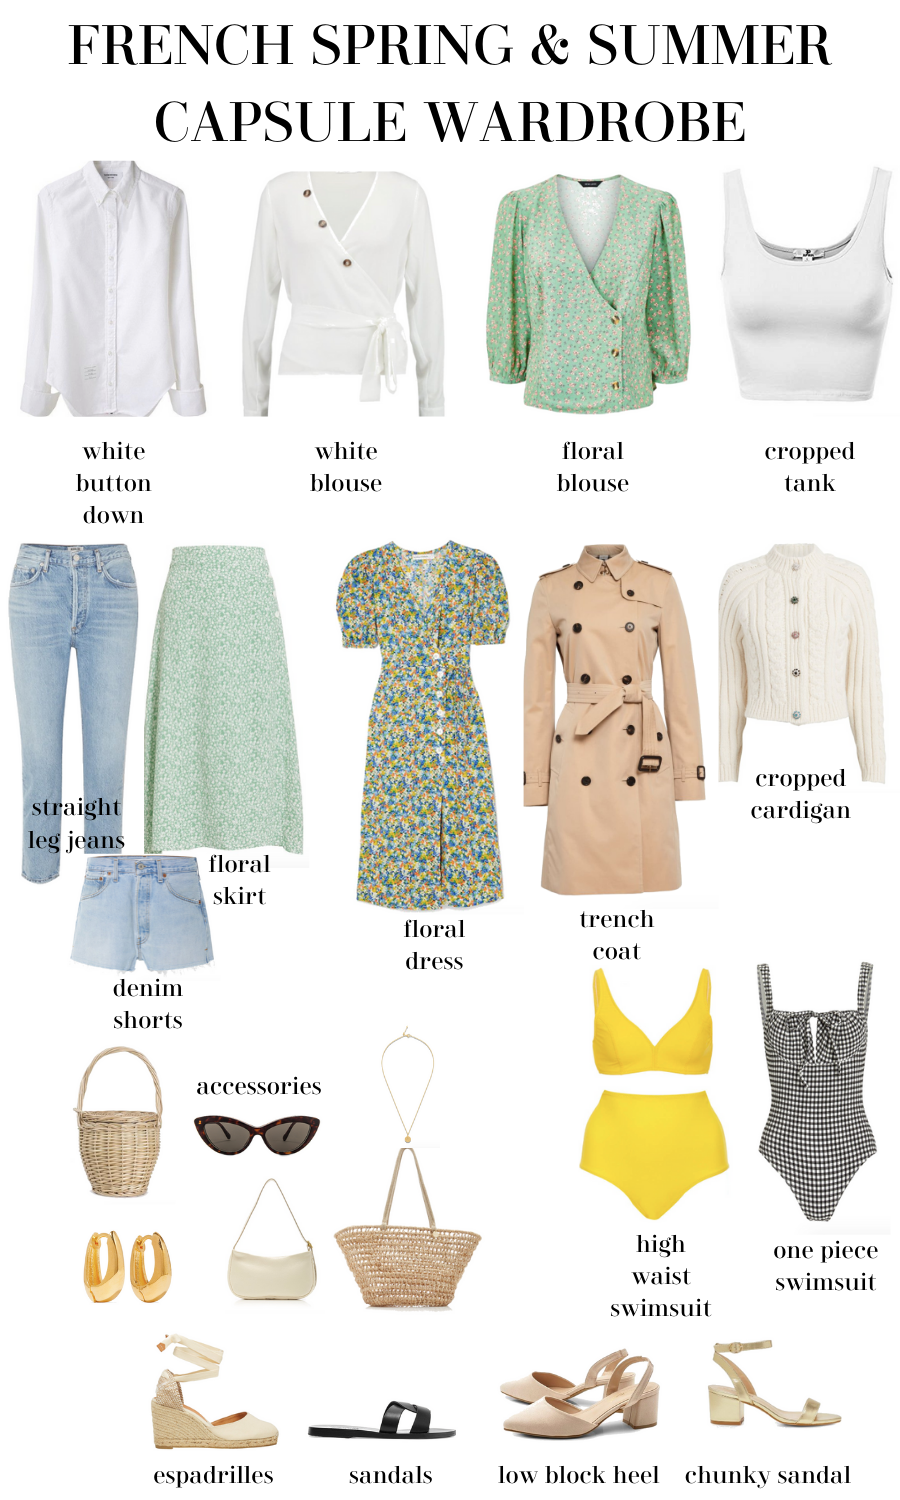 french spring and summer capsule wardrobe